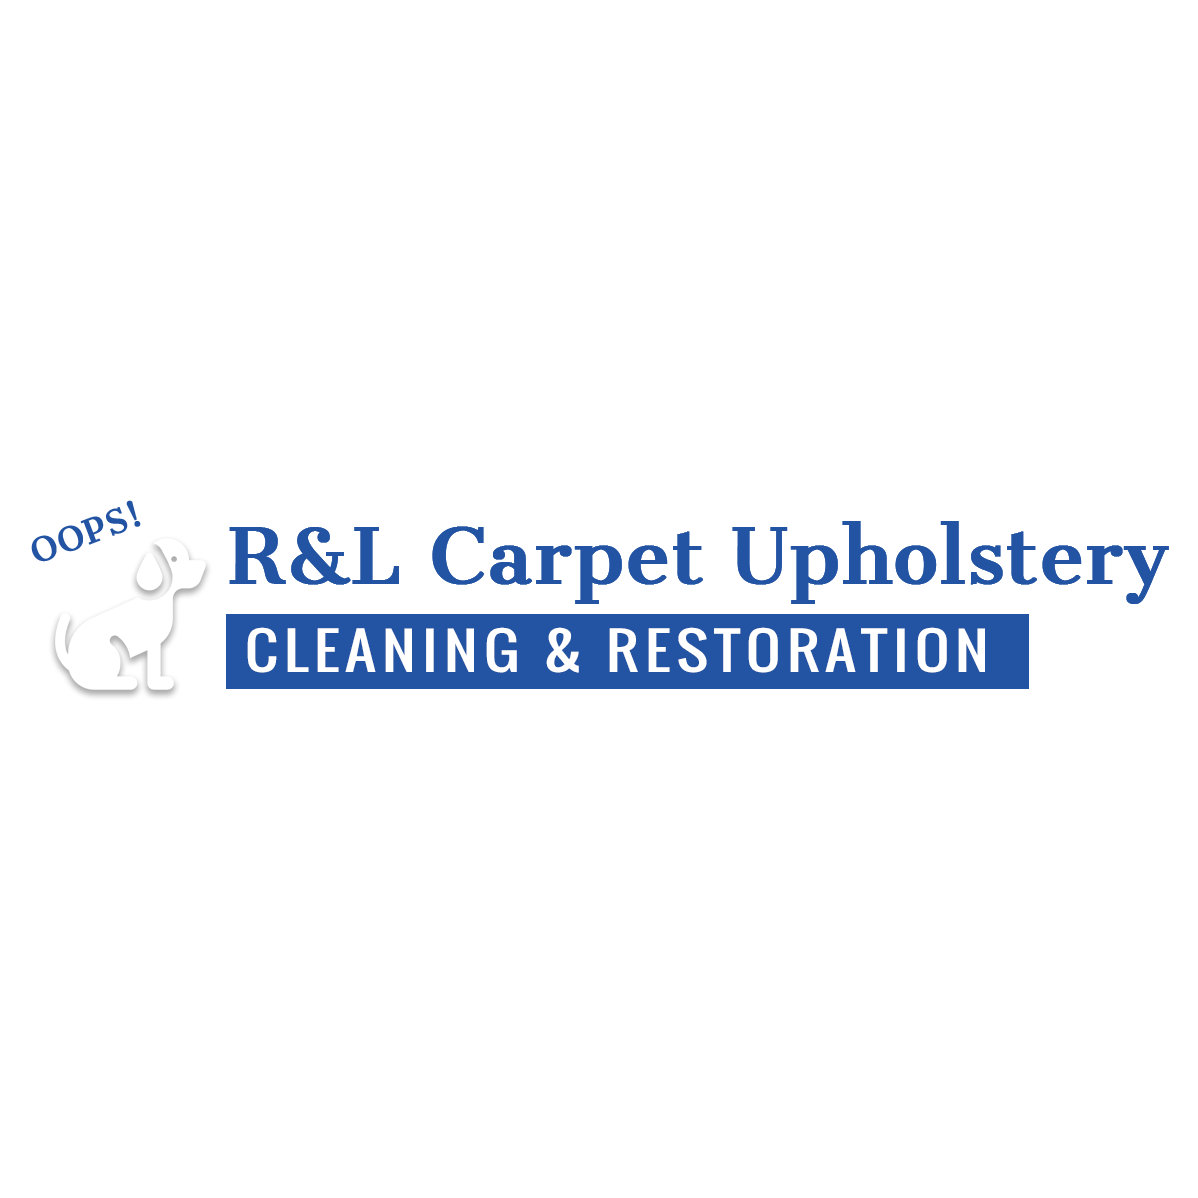 R&L Carpet Upholstery Cleaning & Restoration